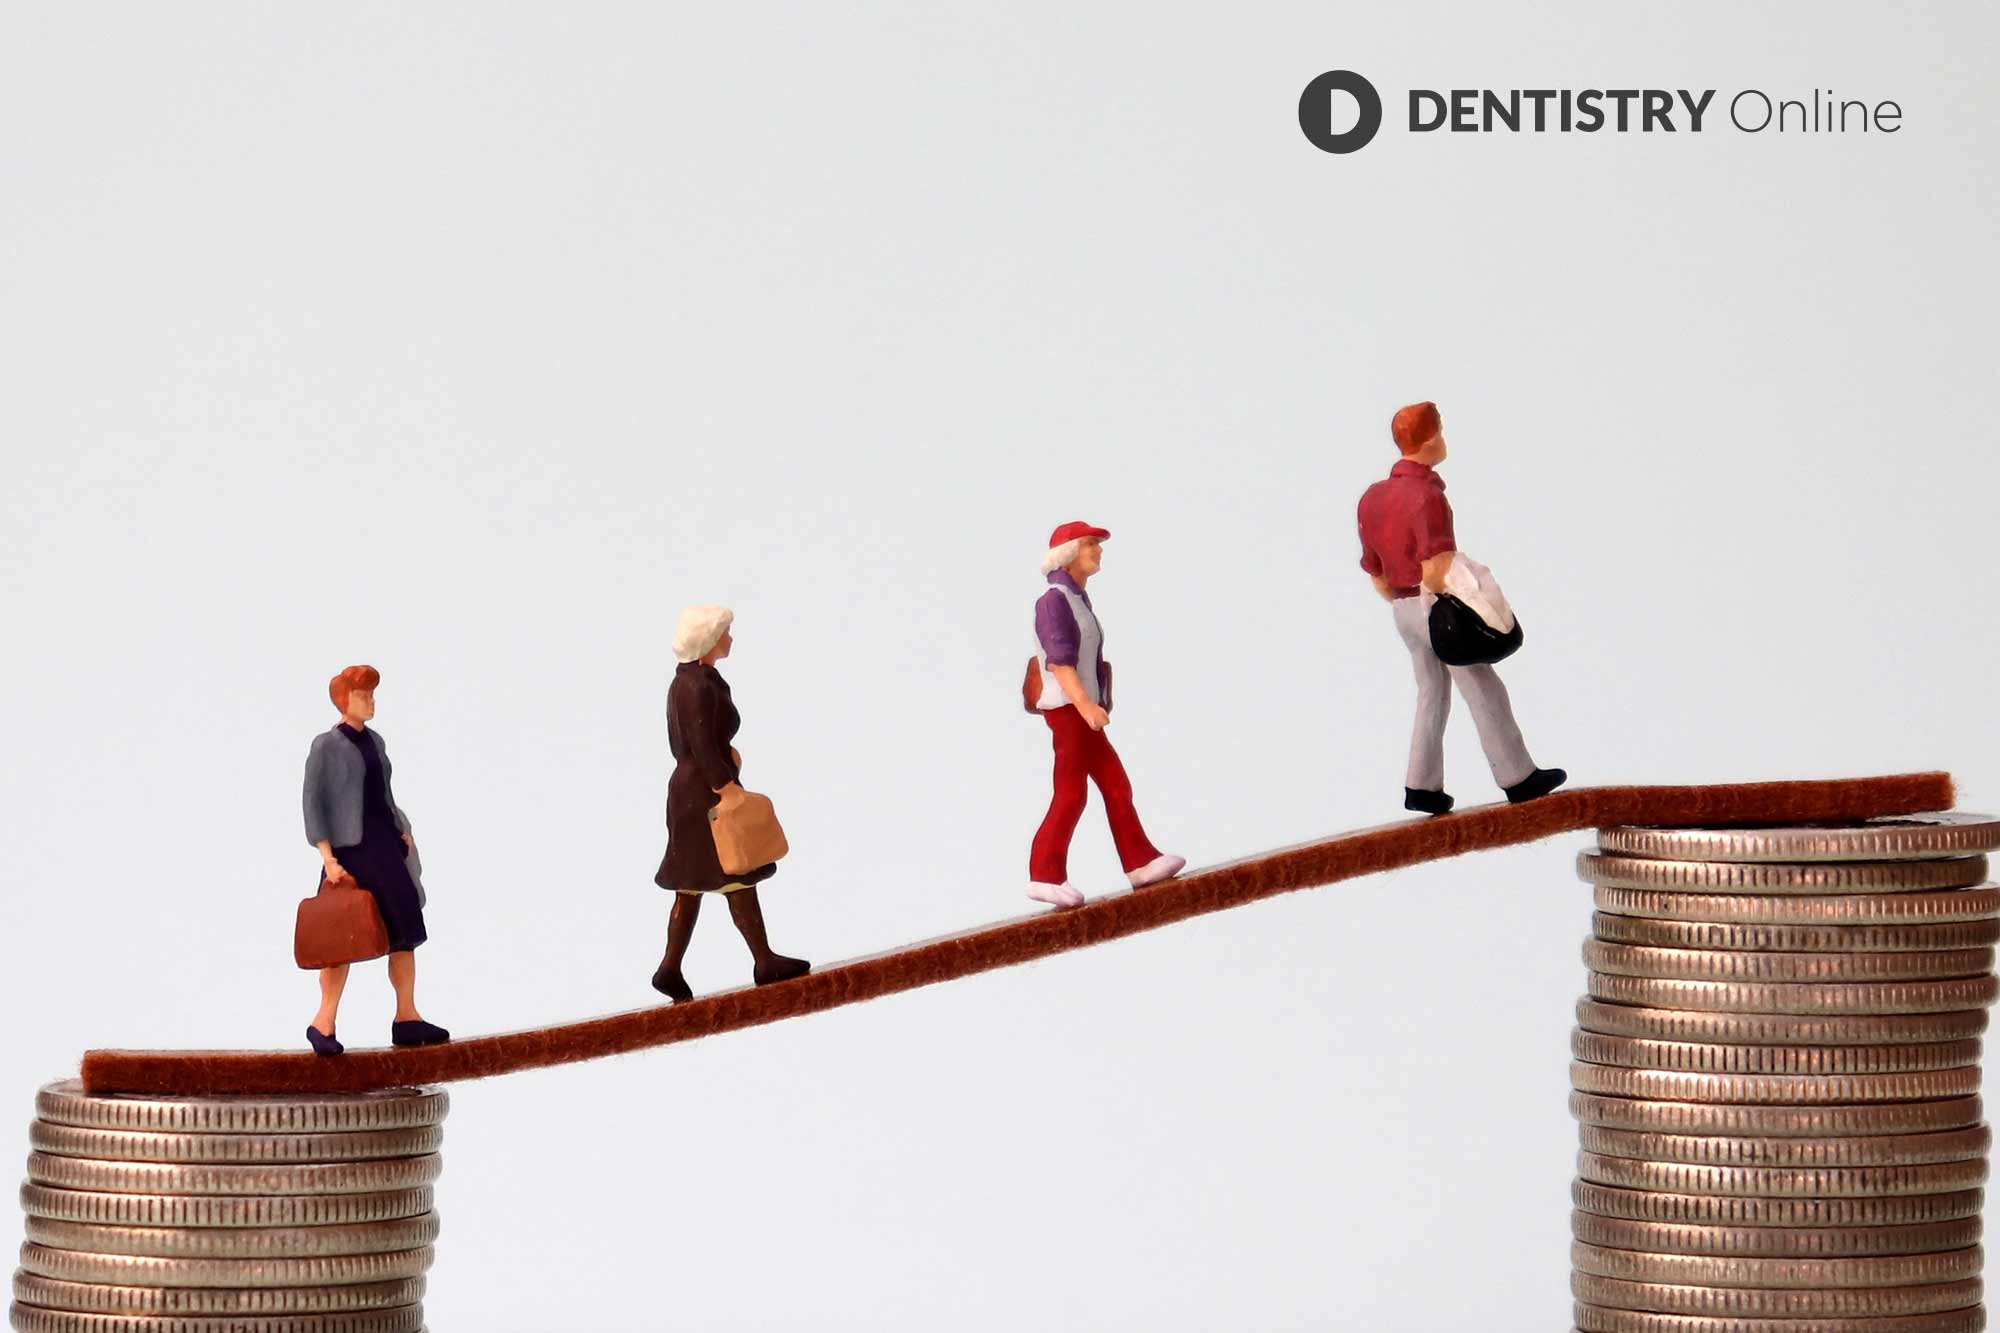 UK fails to make list of countries paying highest salaries for dentists